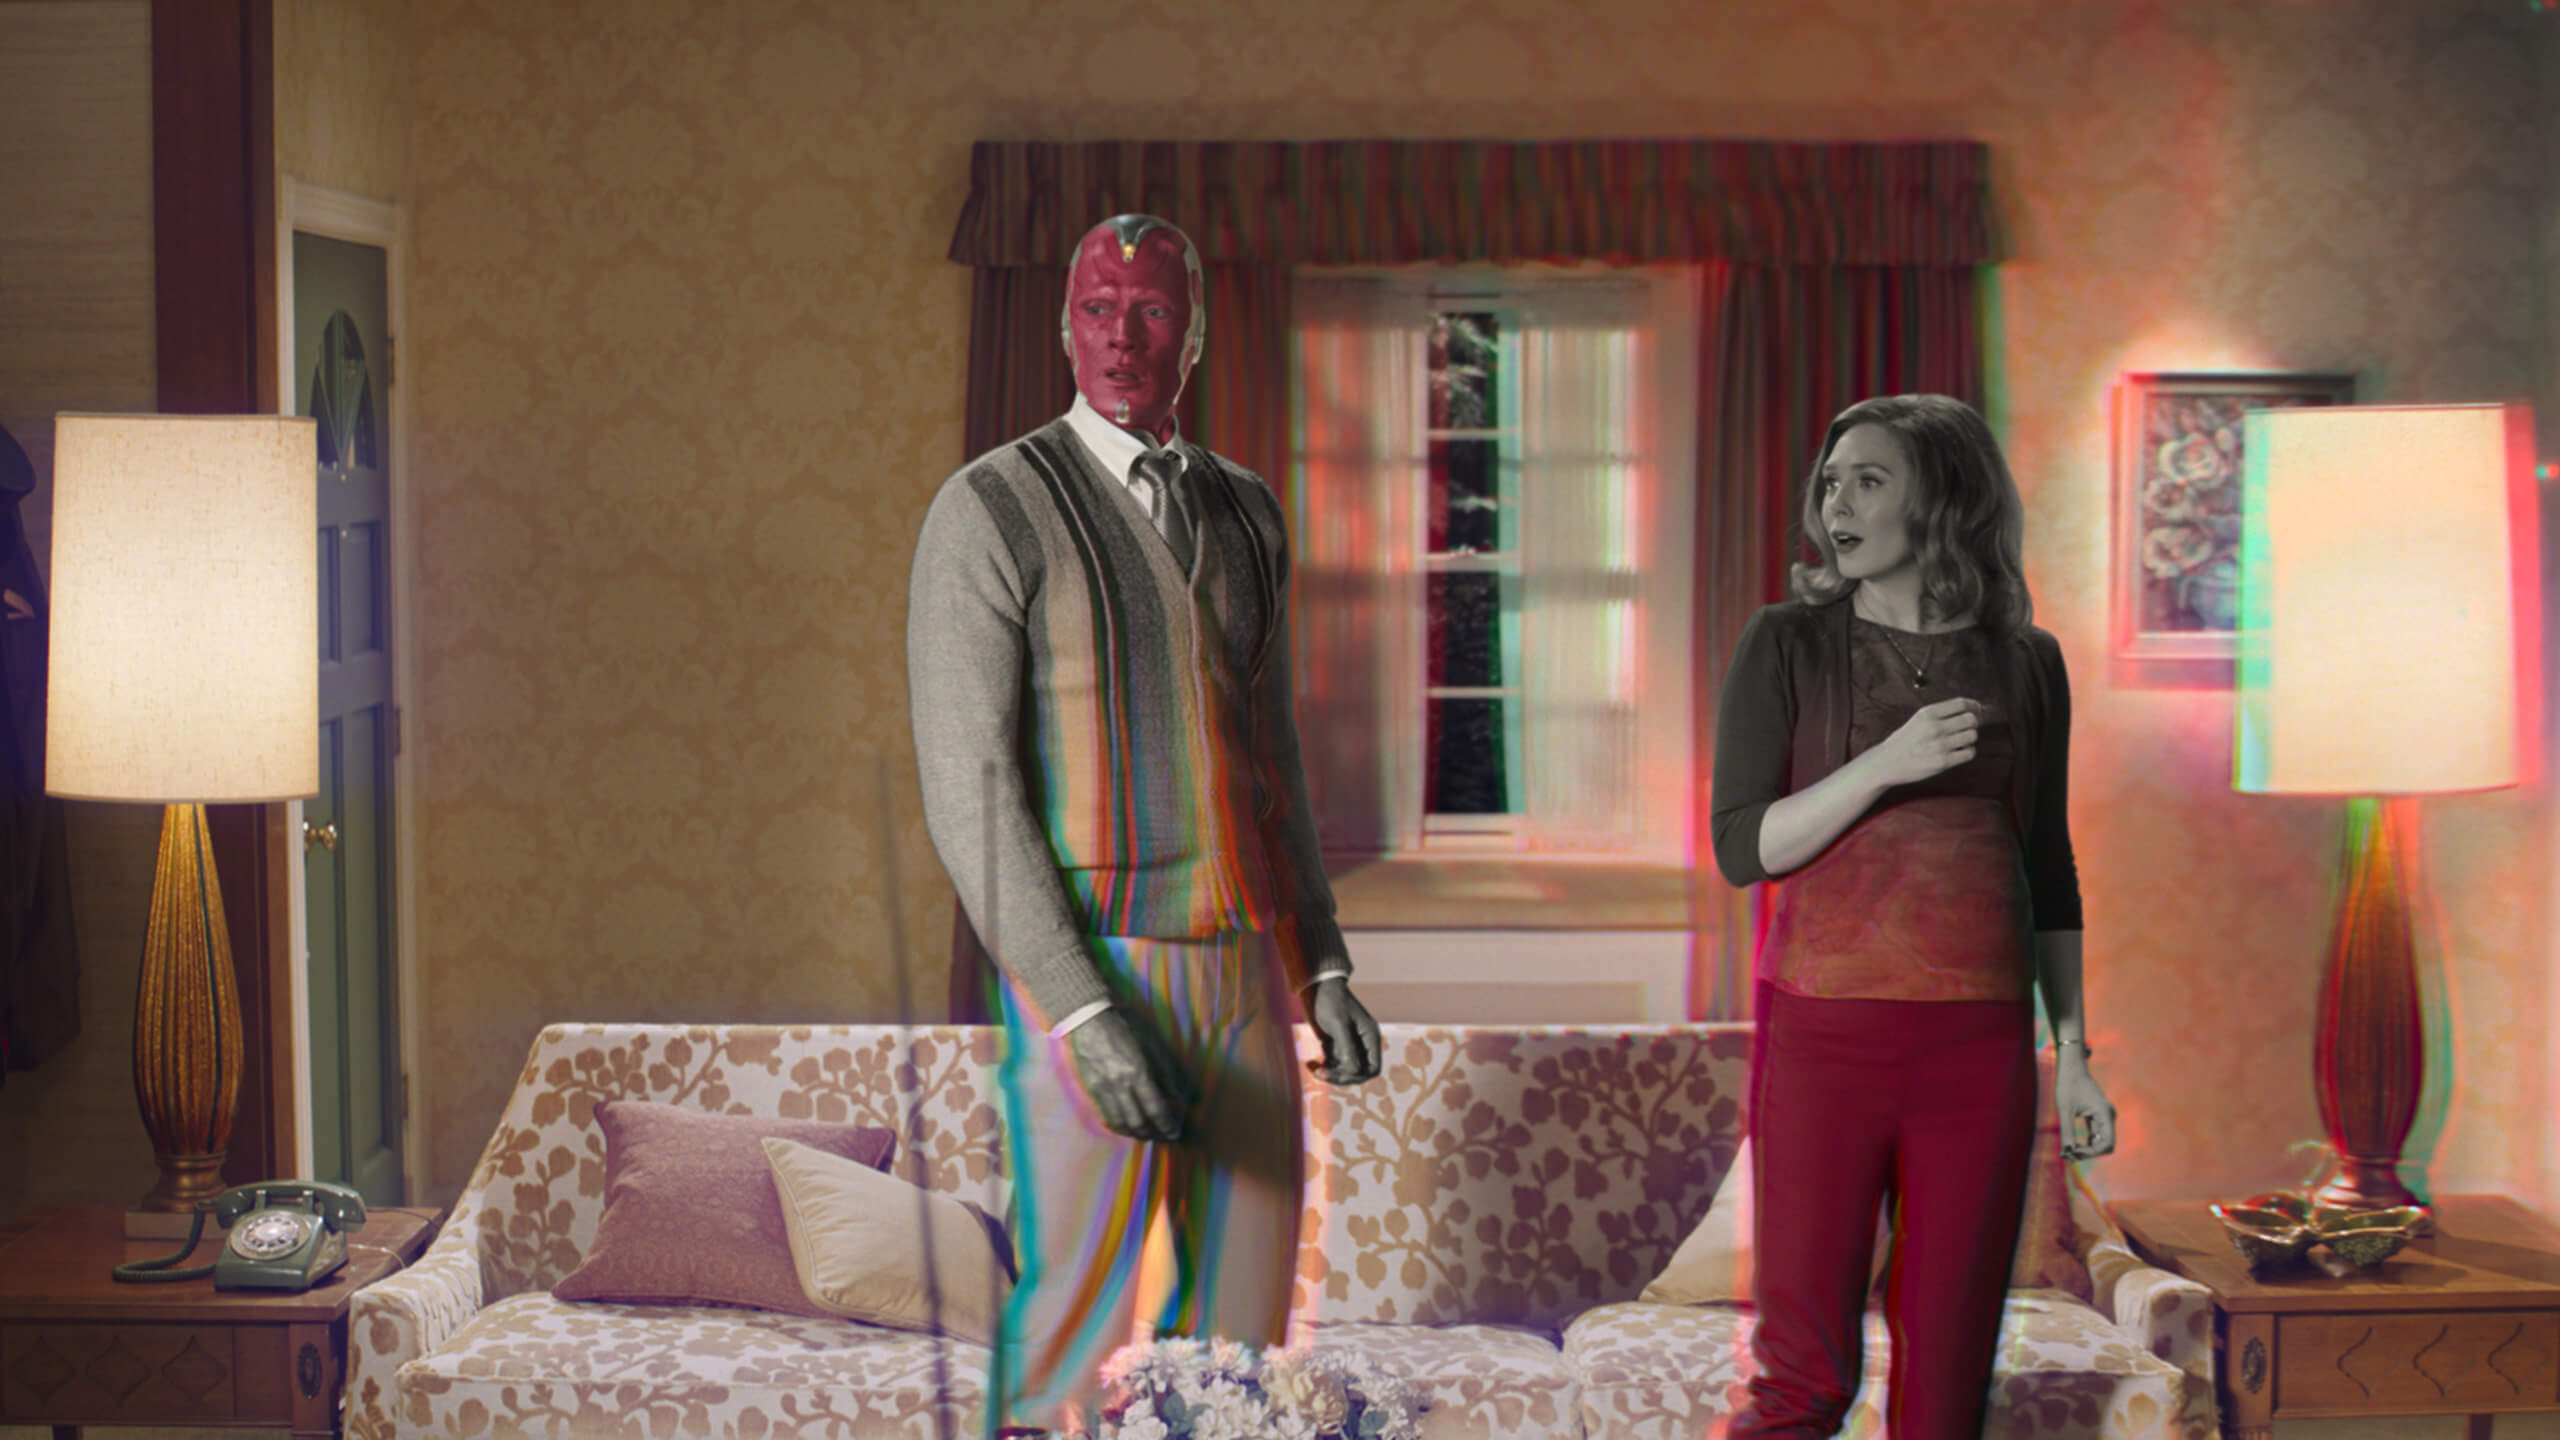 A man with a robotically constructed face and a human woman stand with a surprised look on their faces in the middle of a 1960s-styled living room. Parts of the frame are strobing from a black and white color palette into a scene with more color.